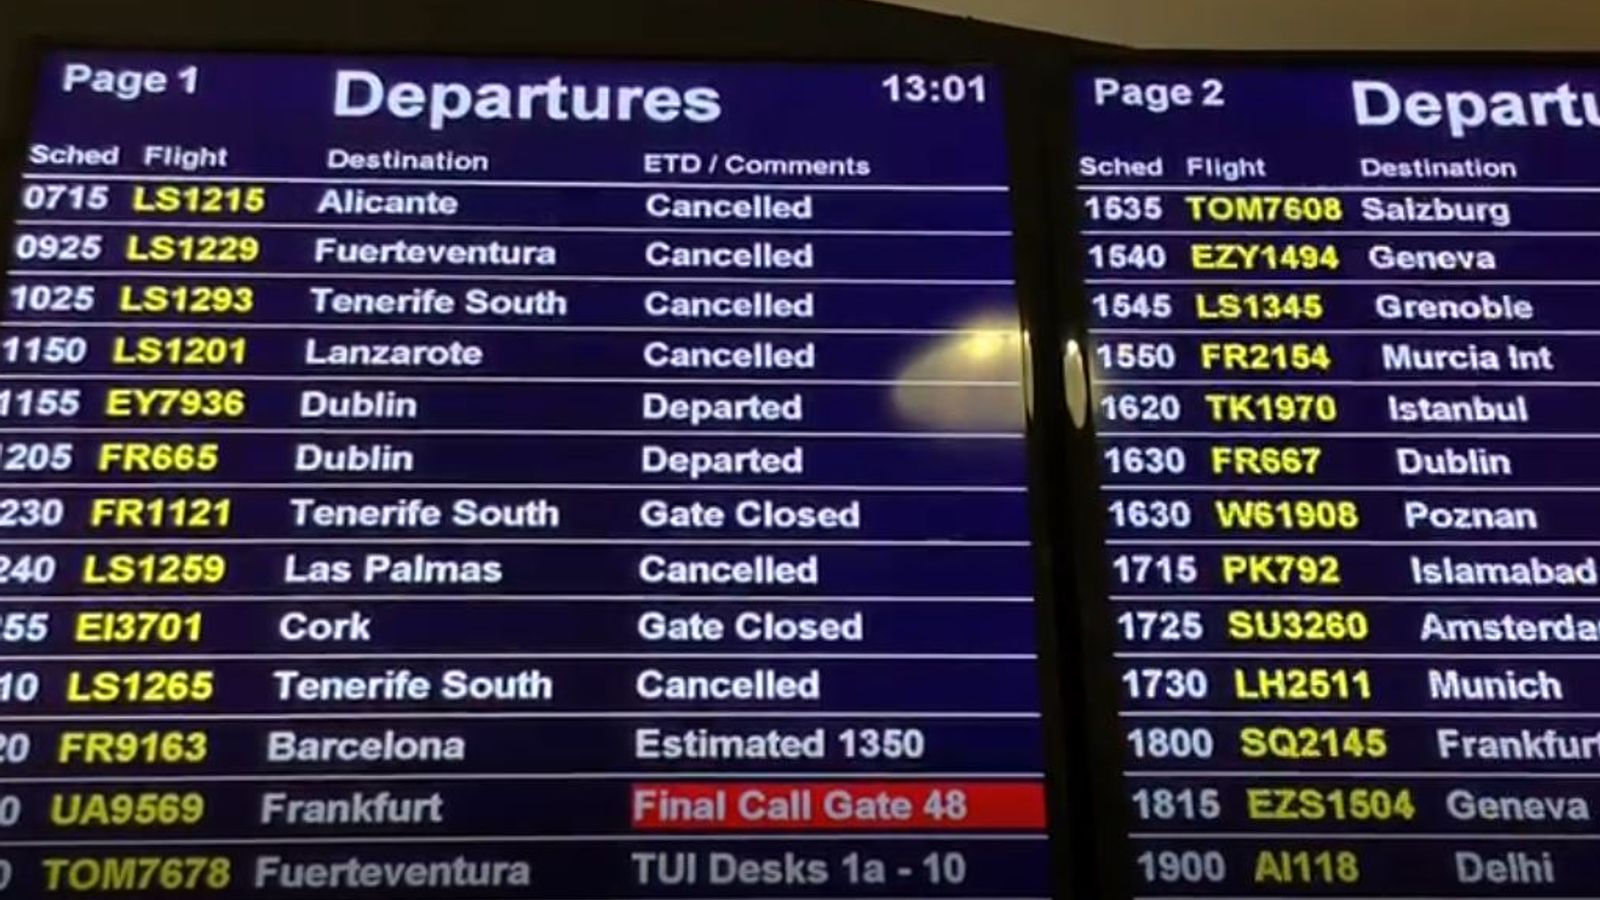 Coronavirus: Chaos for holidaymakers as flights and holidays axed over COVID-19 fears - Sky News